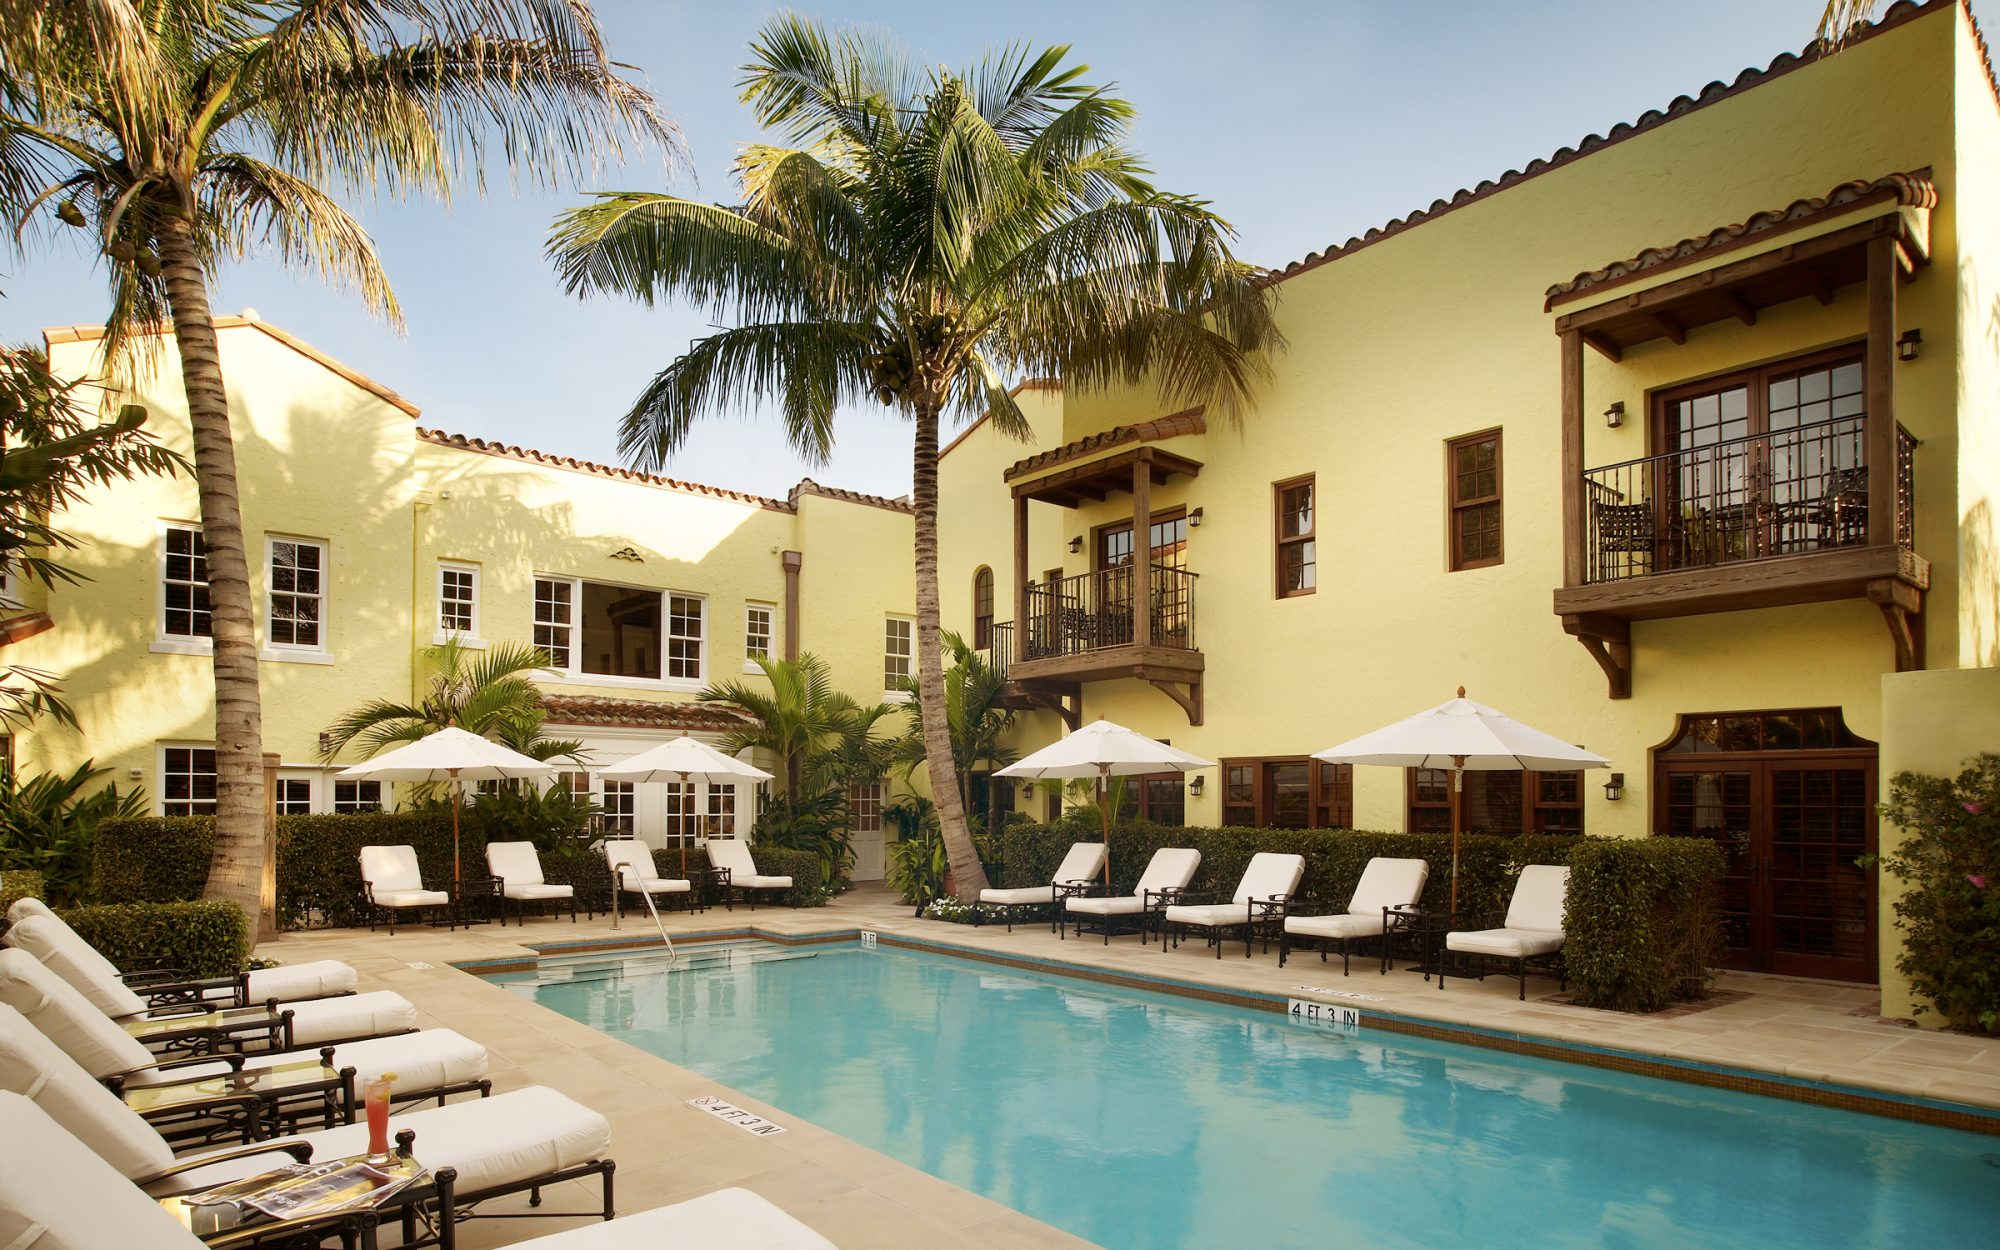 No. 6: Brazilian Court Hotel, Palm Beach